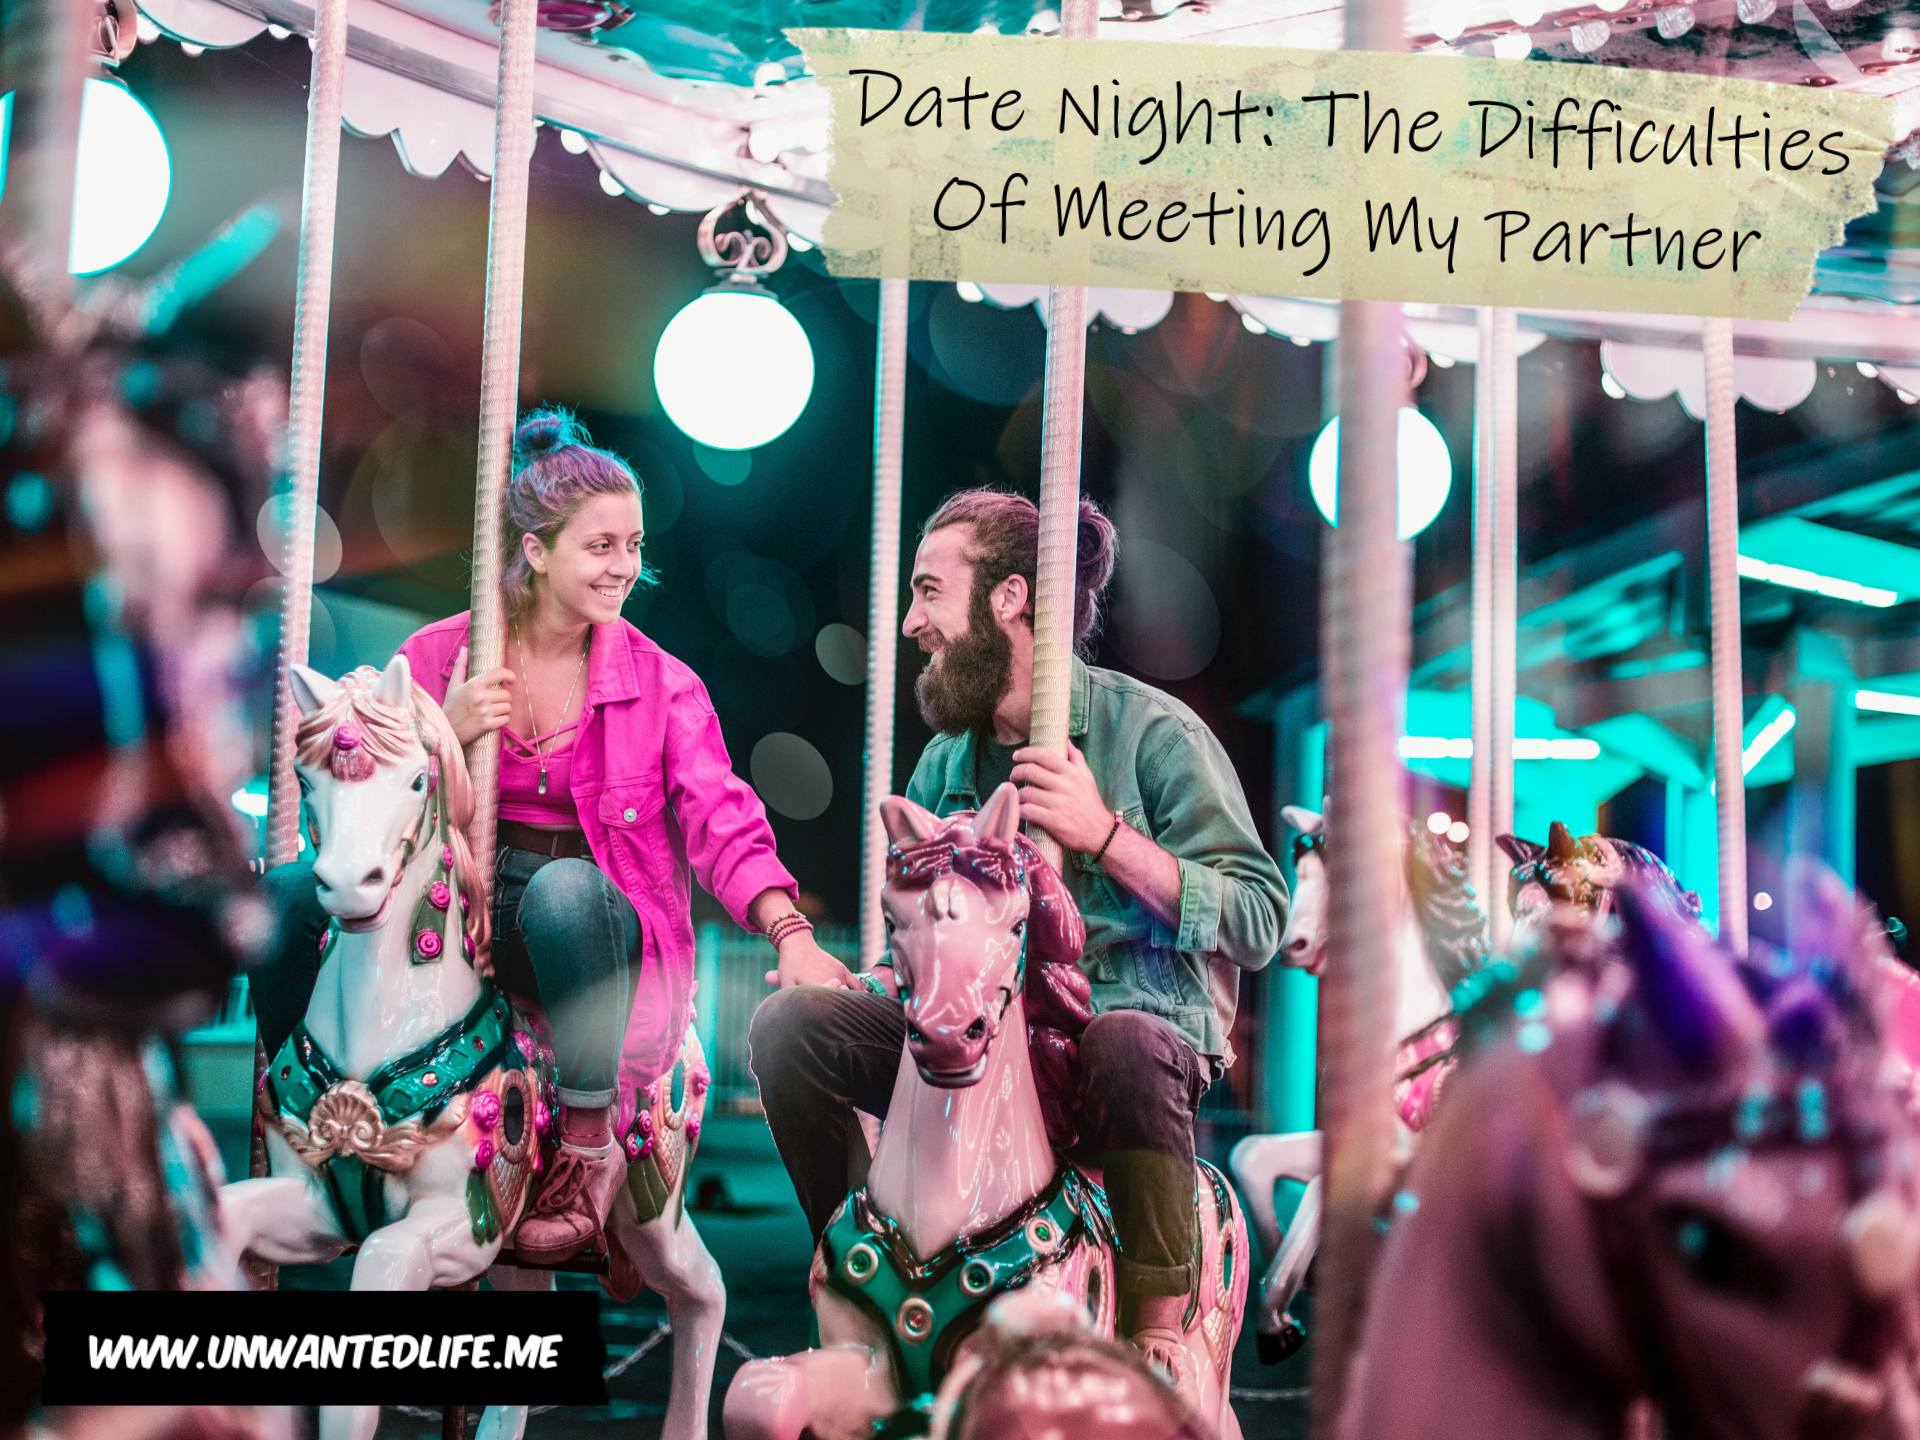 A couple riding a merry-go-round on a date with the title of the article above them - Date Night: The Difficulties Of Meeting My Partner